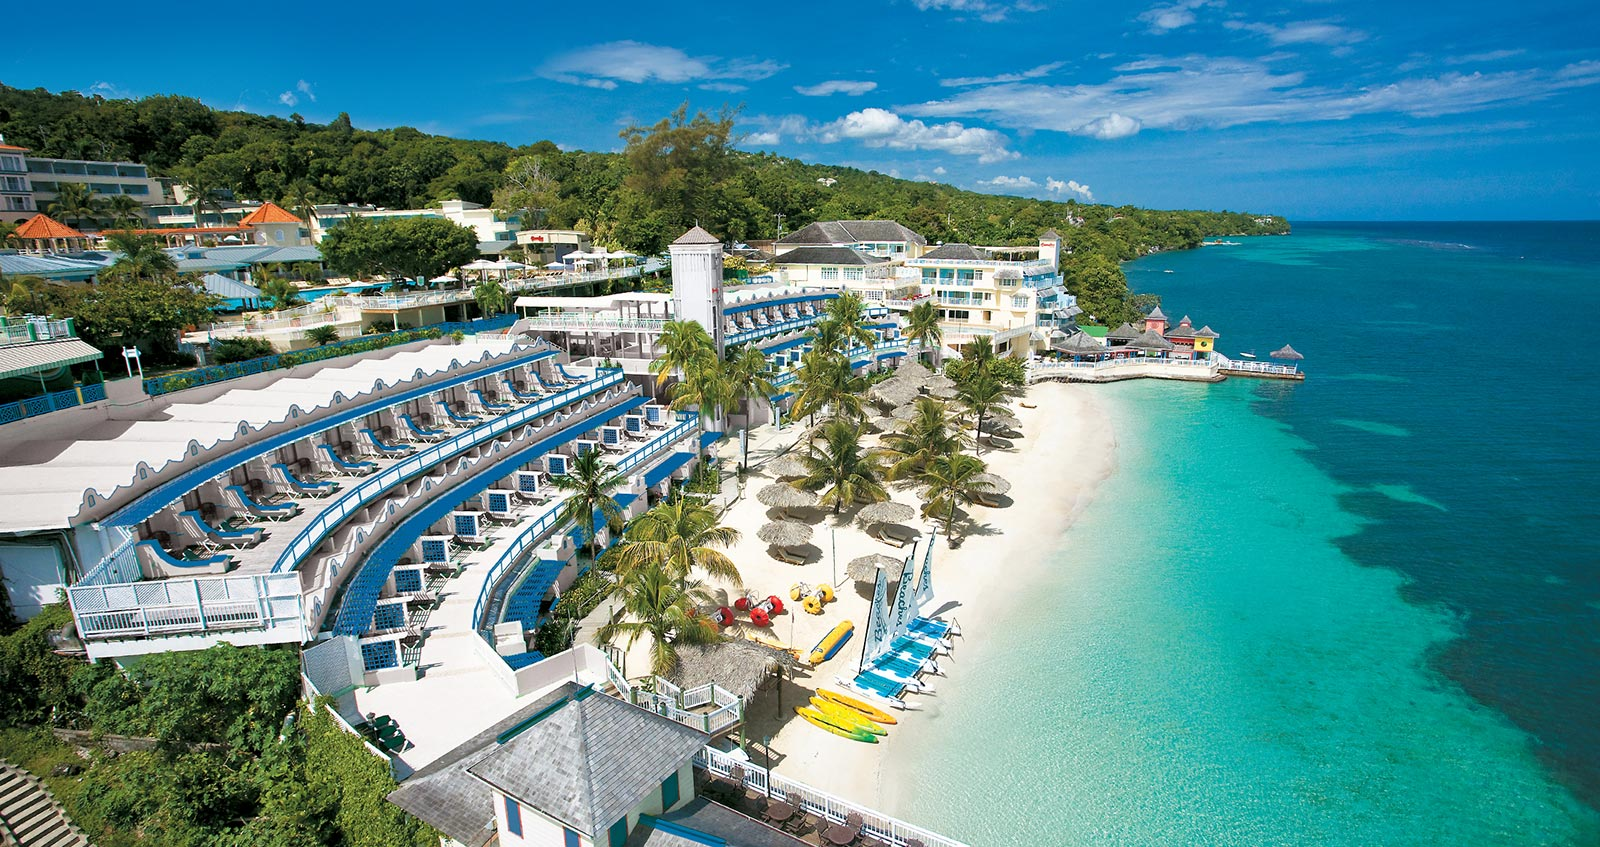 Beaches Ocho Rios: Family Friendly All-Inclusive Resort in ... on sandals carlyle, sandals resort antigua, sandals emerald bay resort map, sandals montego bay jamaica,